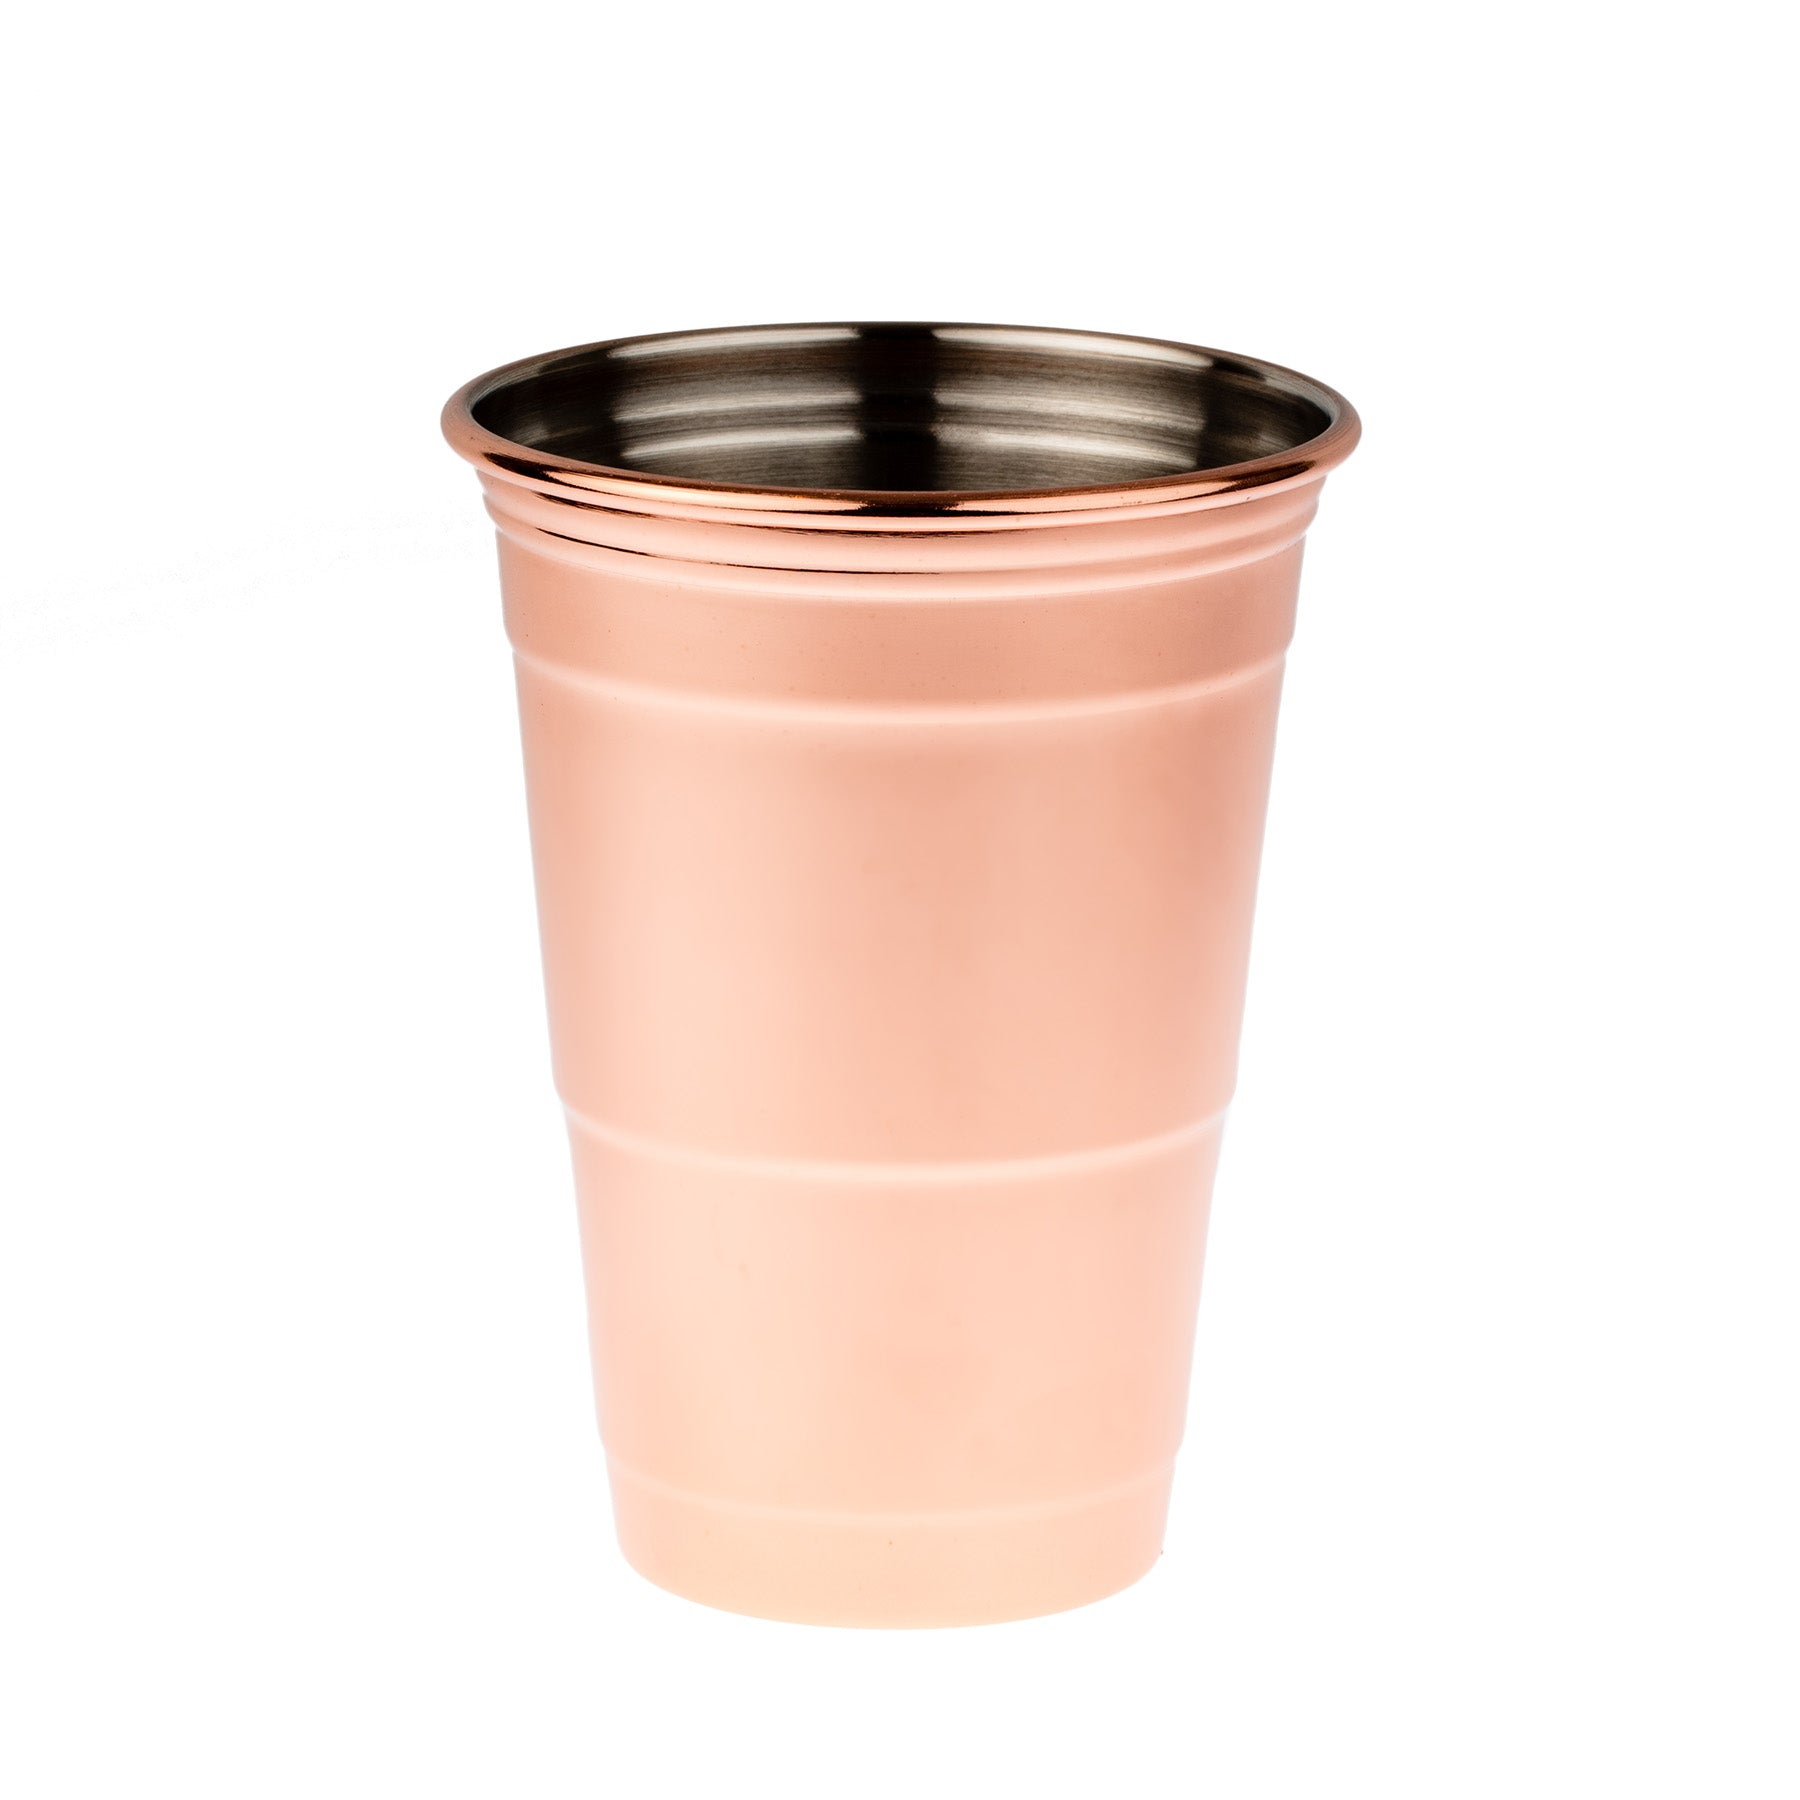 Copper-Plated Solo Cup